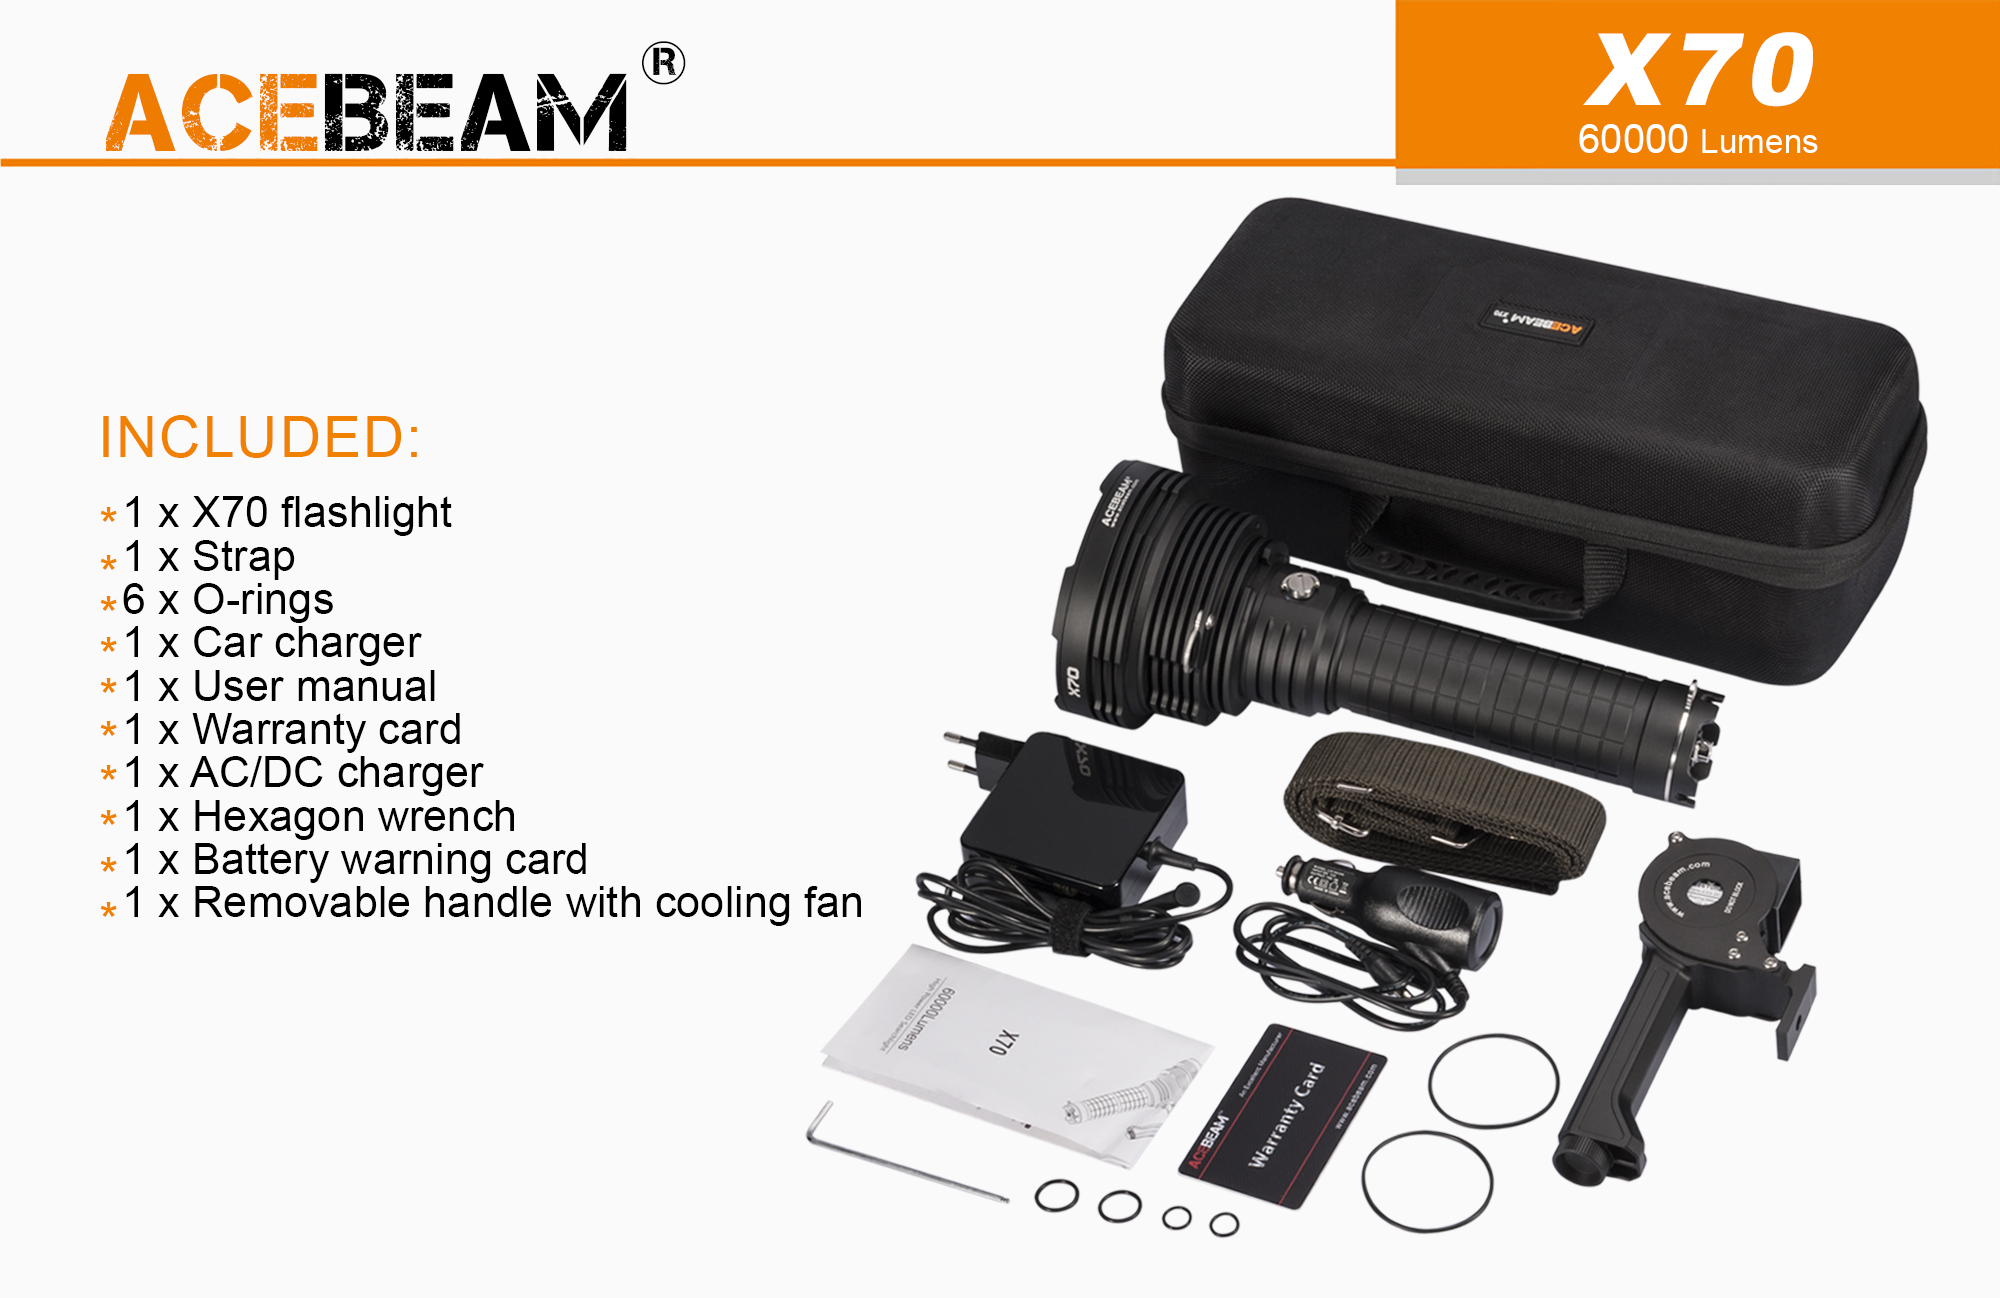 Linterna Acebeam X70, Review y video Unboxing